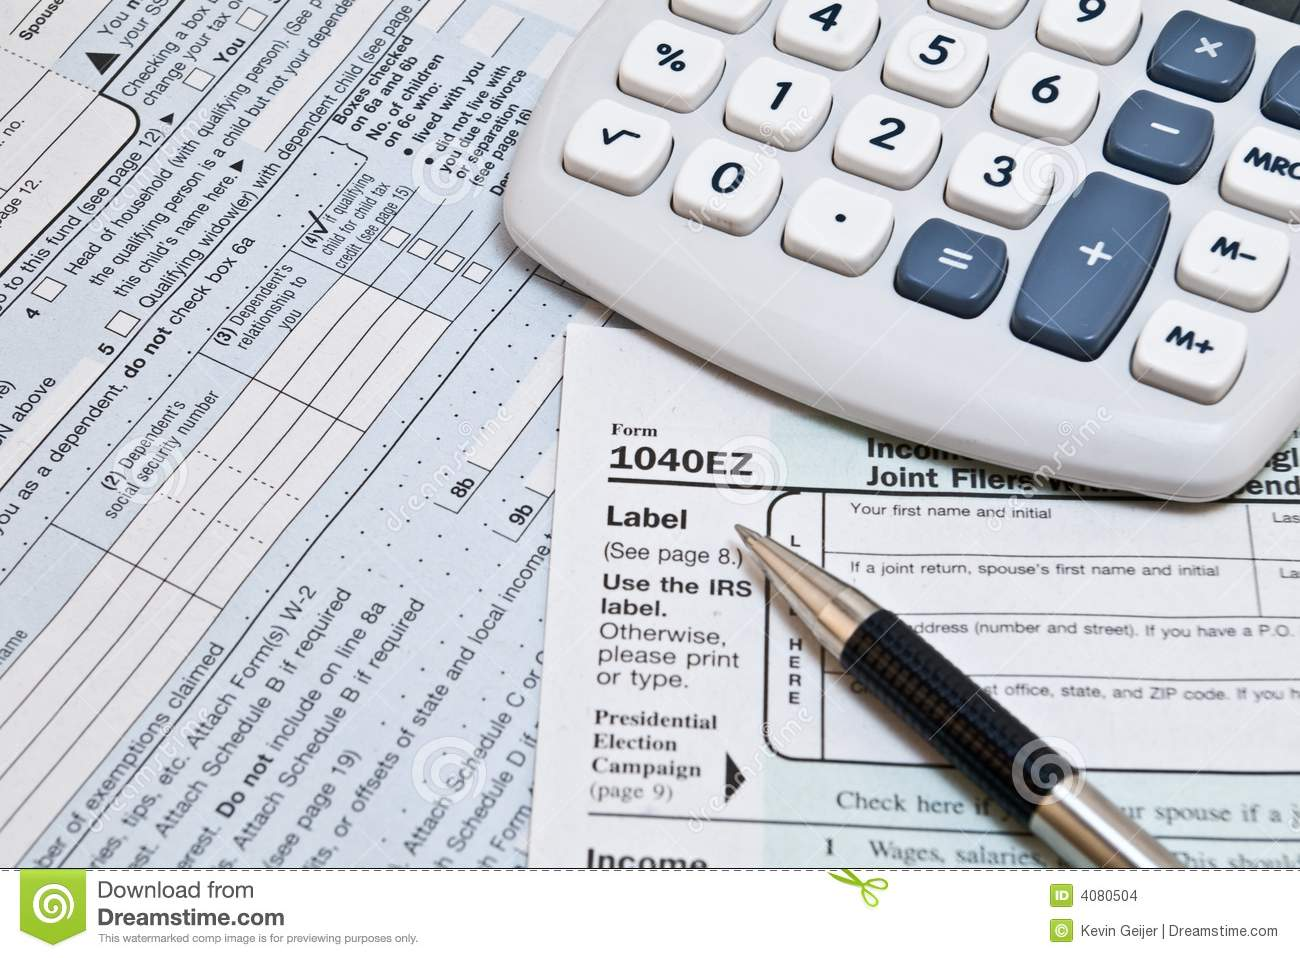 1040ez Irs Forms Stock Photo Image Of Internal Calculator 4080504